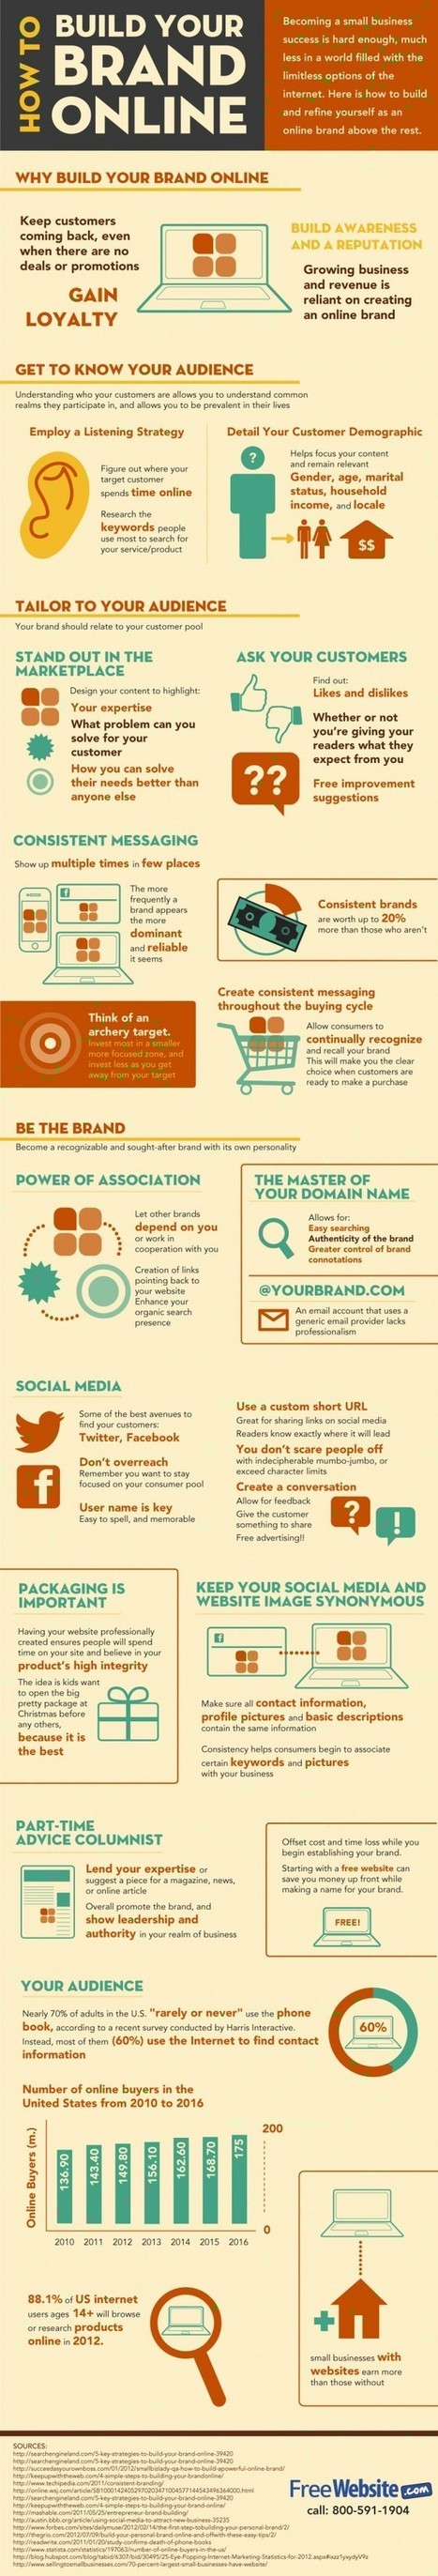 Why You Need to Build Your Brand Online [infographic] | MarketingHits | Scoop.it